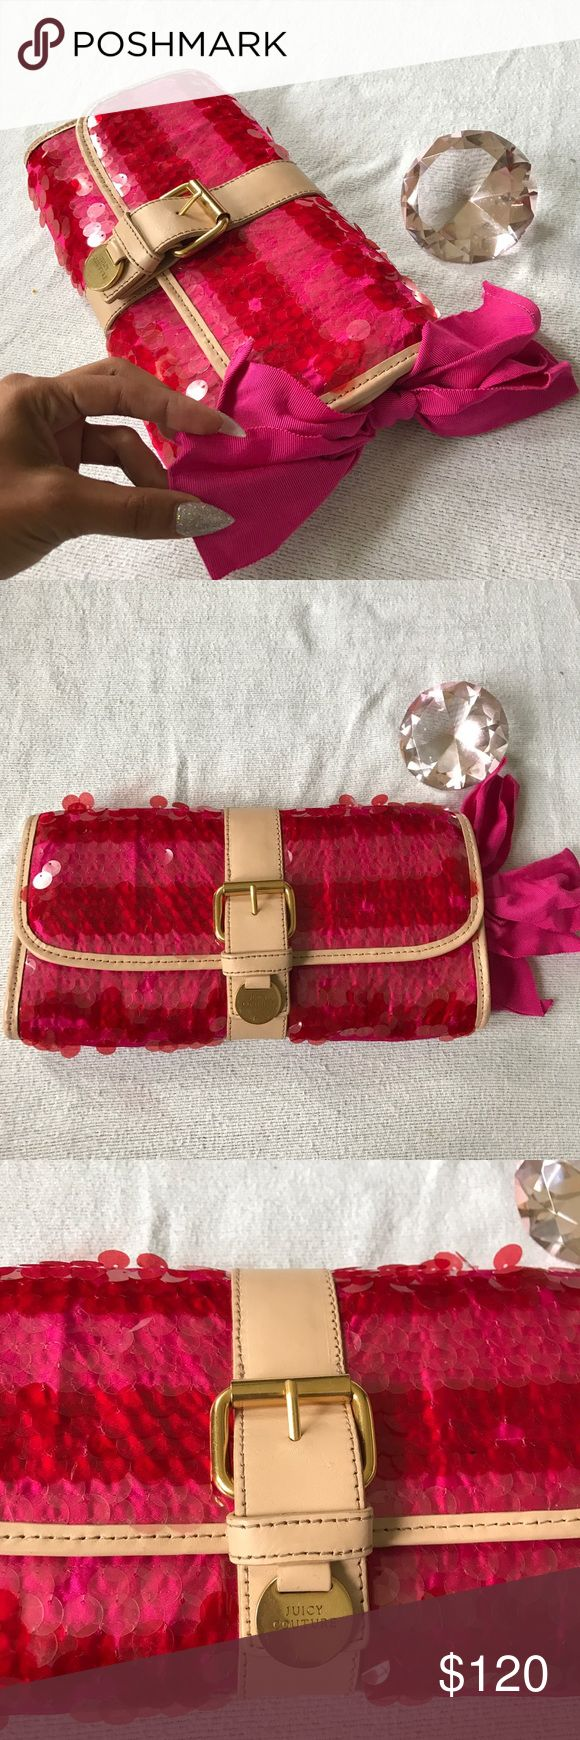 💝💕 juicy couture women's clutch purse 💝💞 This is one of the most unique pieces from juicy couture💝💕 this clutch purse is decked out in pink, covered in sequin on from with a beautiful big hold buckle with magnet snaps to close it. The back is weaved worn straw,,, big beautiful bow on side and nude trims.  This is a gorgeous gorgeous purse.💕💝💞 never been used Juicy Couture Bags Clutches & Wristlets